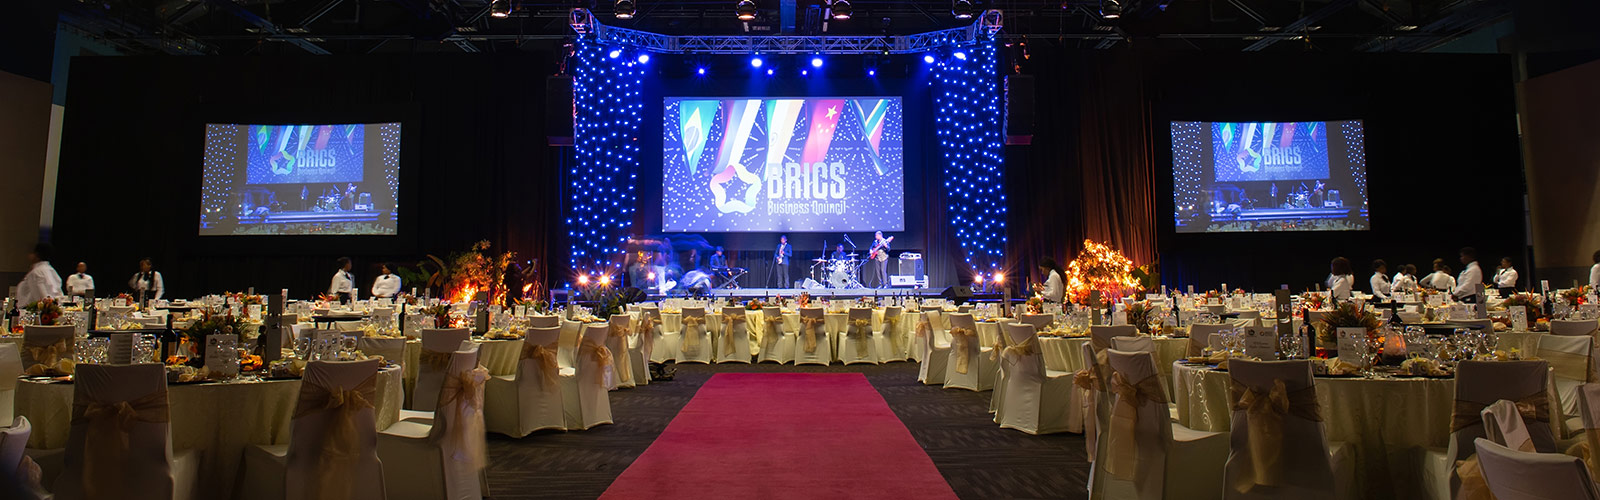 BRICS Business Council Annual Meeting 2018 at the Durban ICC